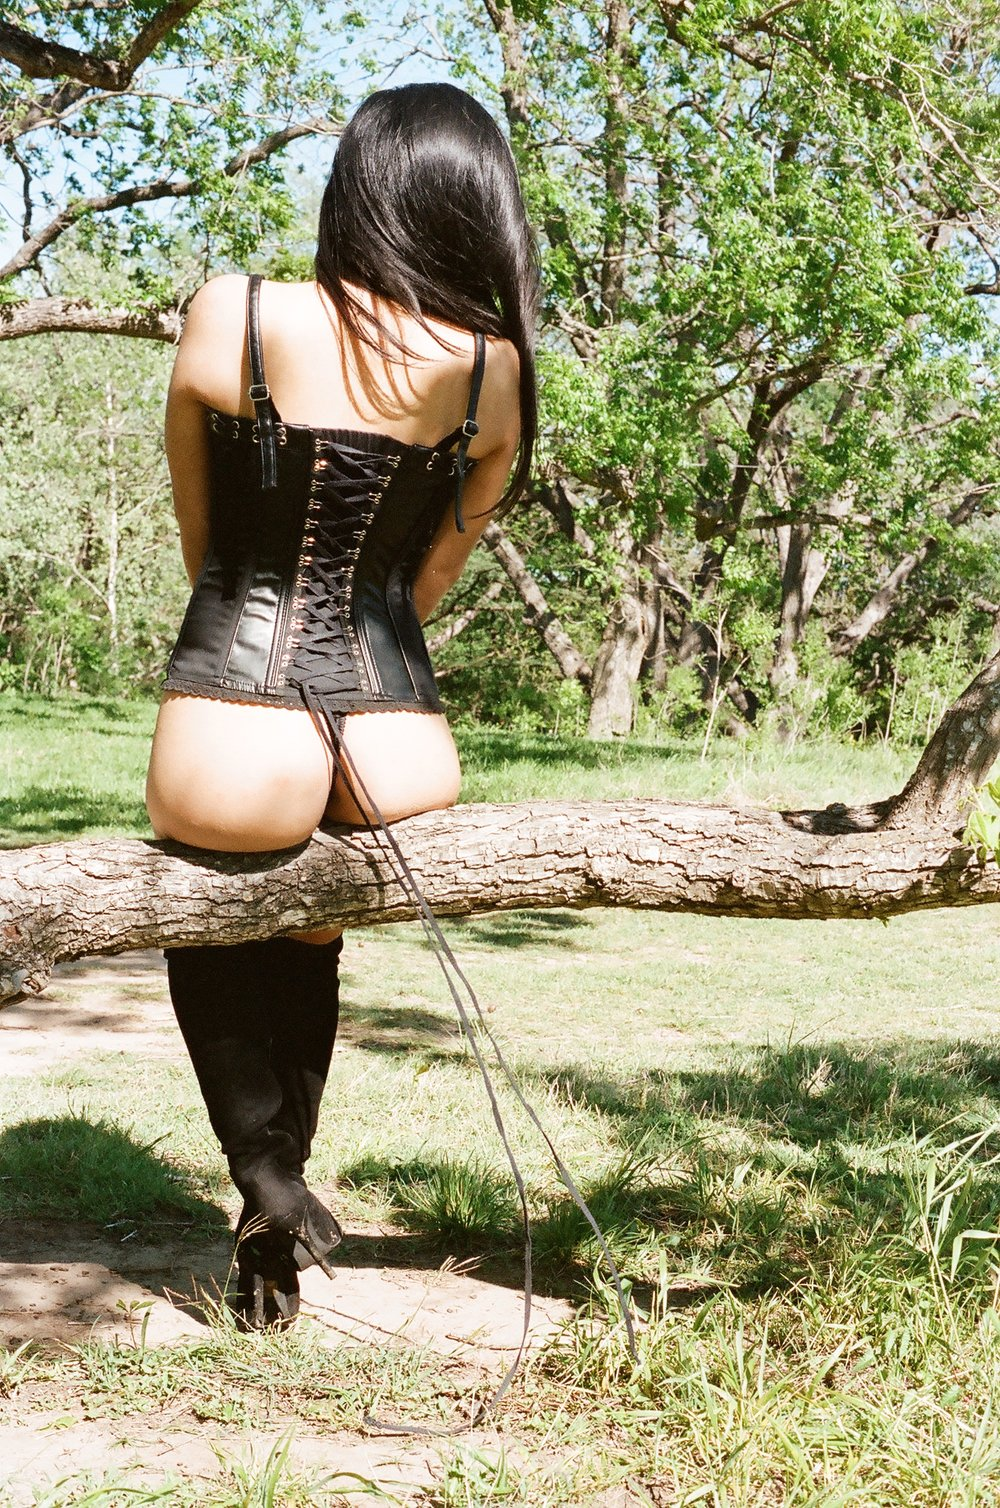 Empress Wu and her huge ass in Nature